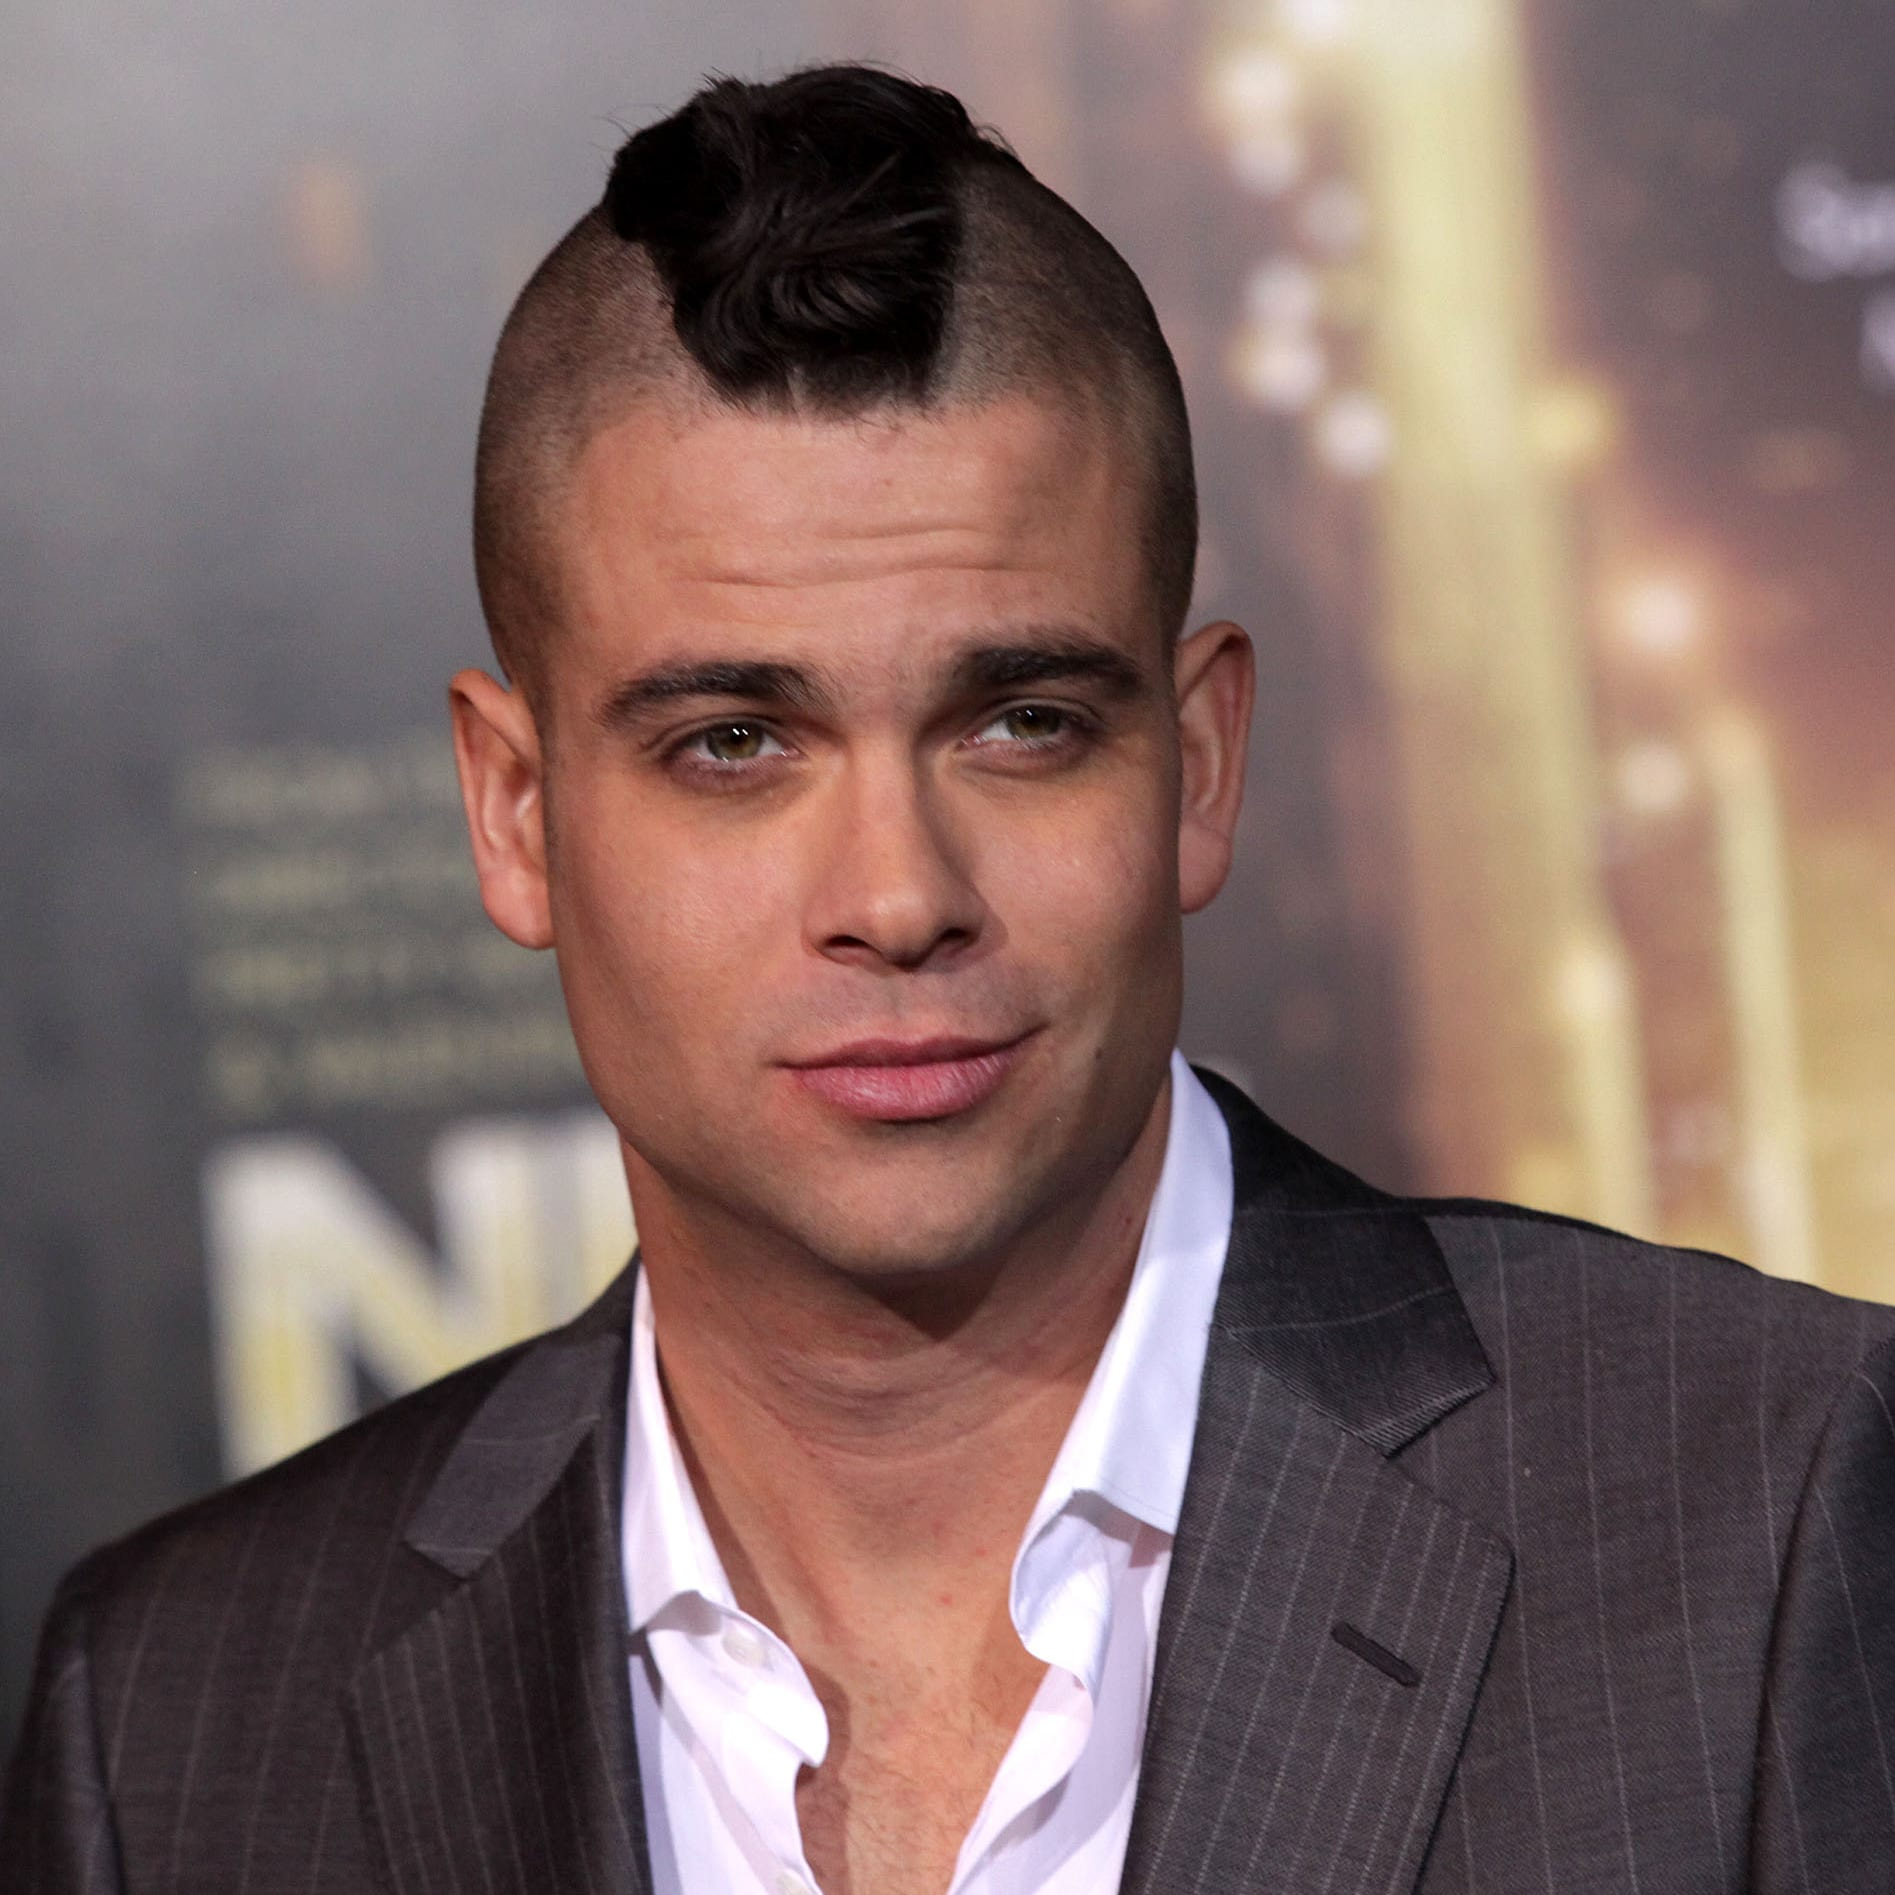 Mark Salling's High and Tight Recon